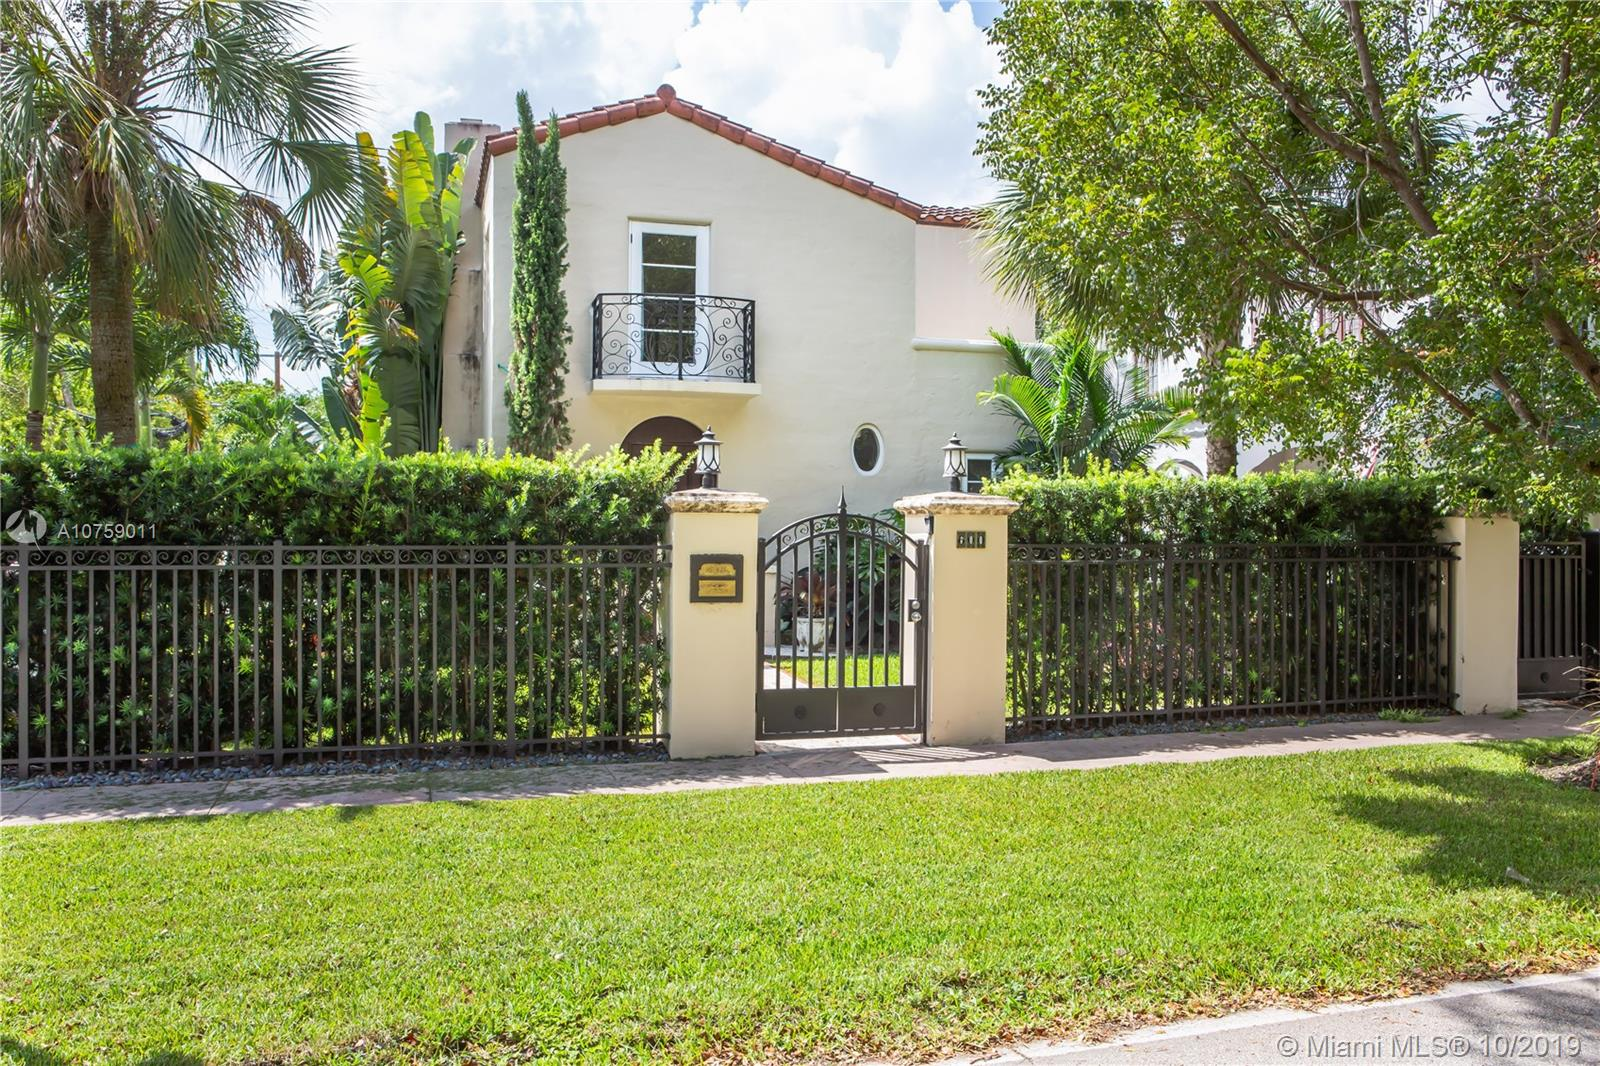 600  Minorca Ave  For Sale A10759011, FL